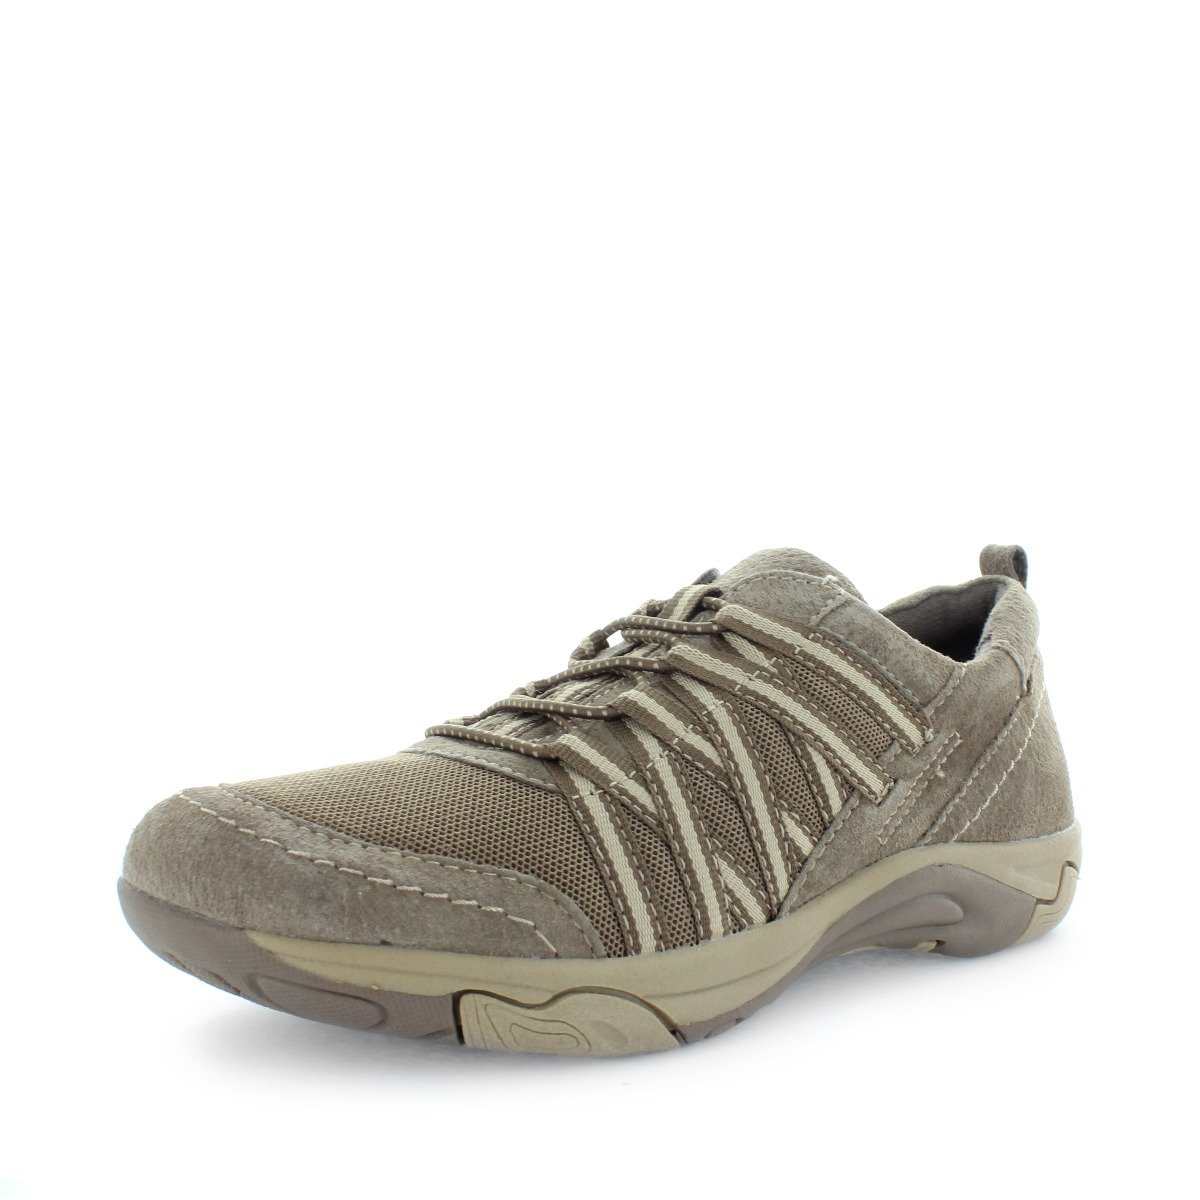 deena, planet shoes, athletic shoes, sneakers, runners